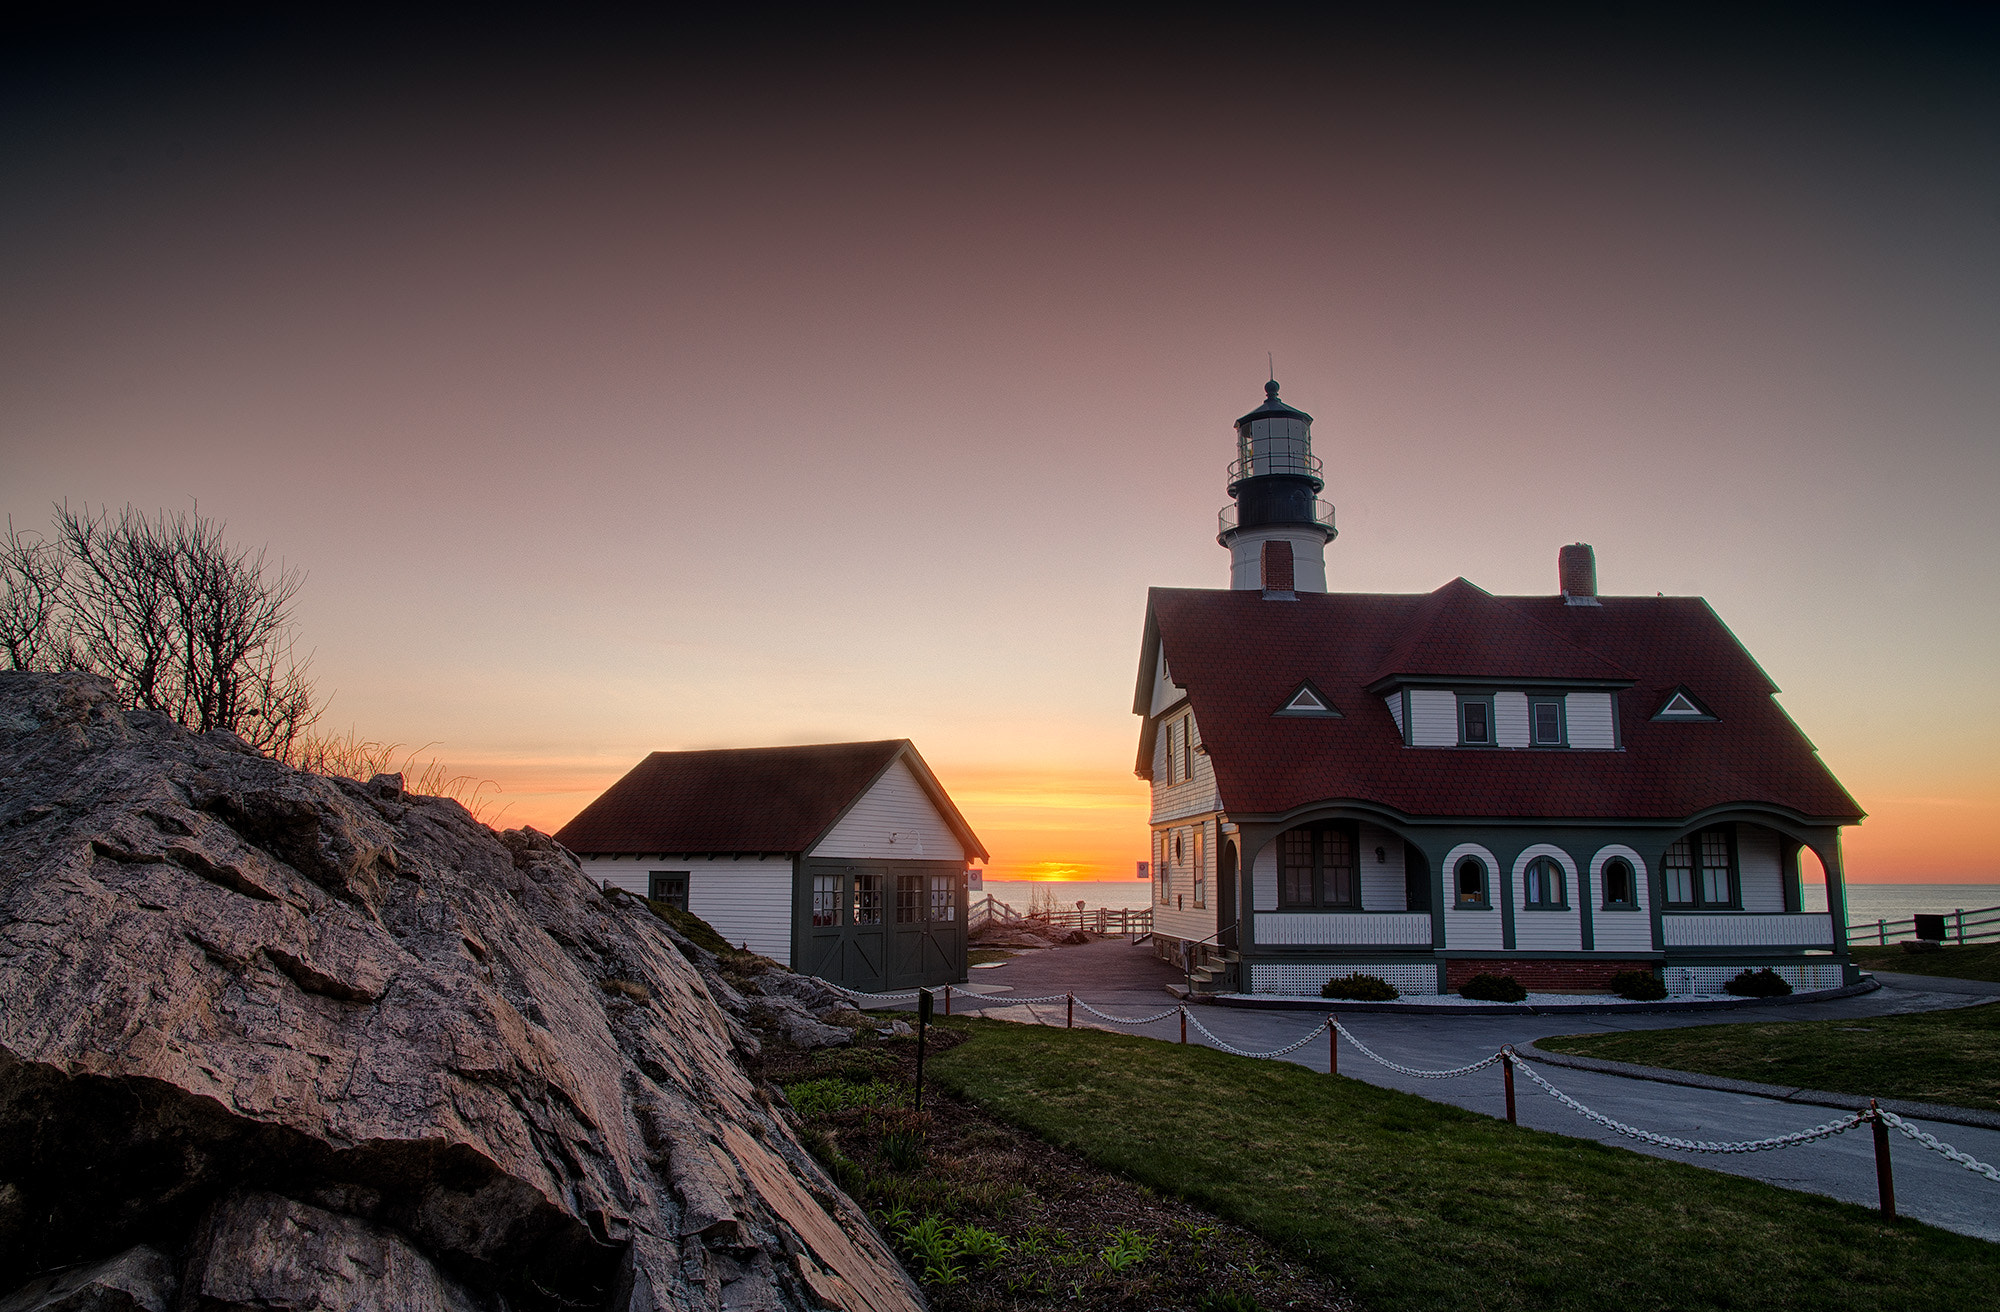 Photograph Portland Headlight, Cape Elizabeth, Maine by Chris Drew on 500px